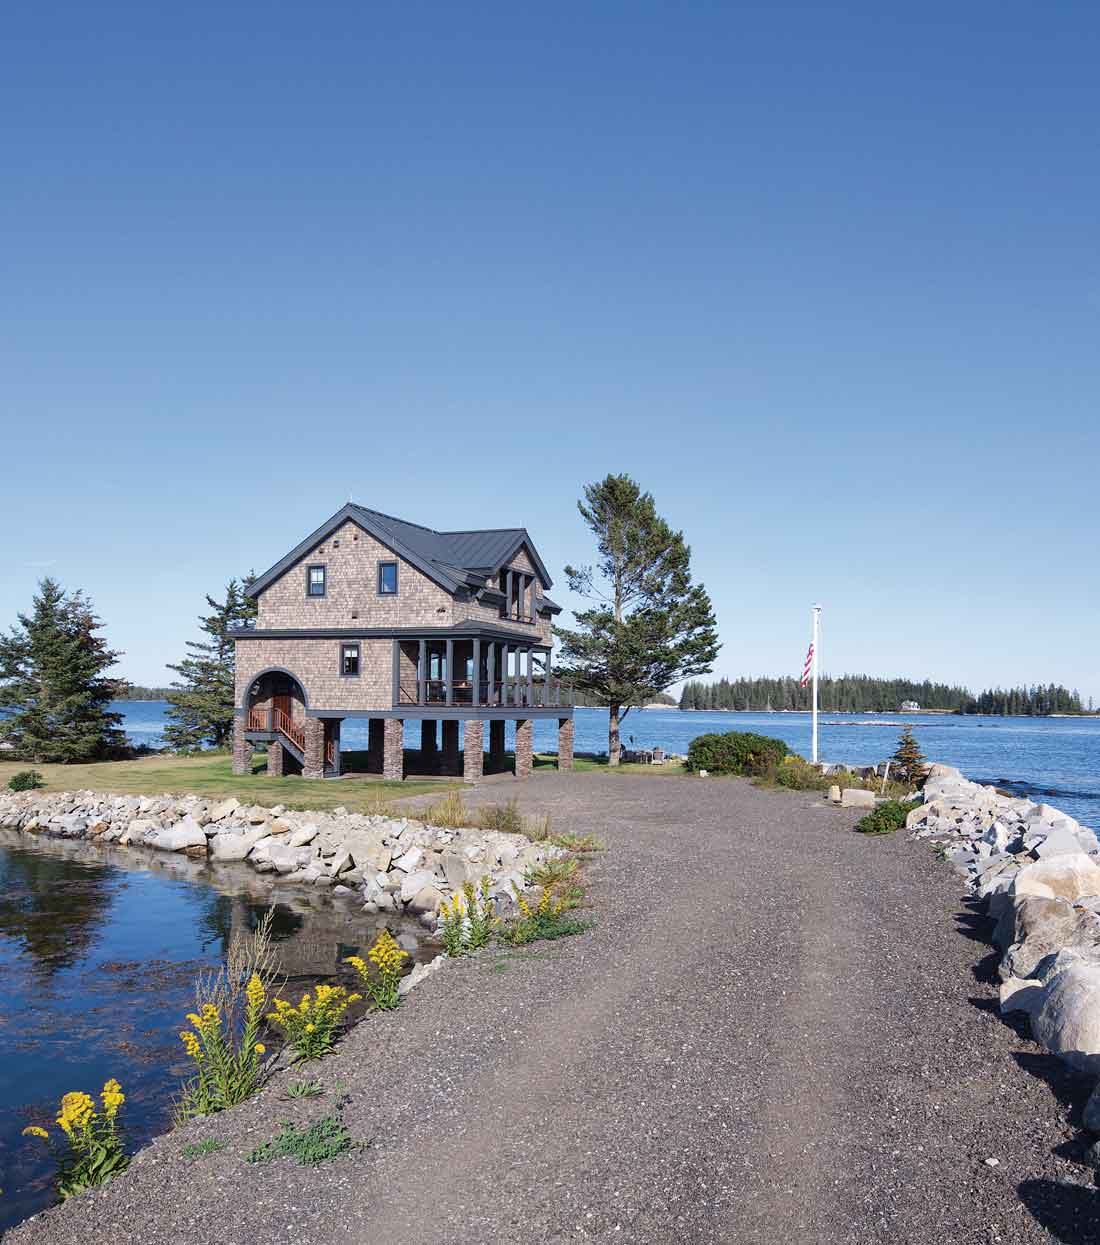 Mouse Island in St. George, Maine